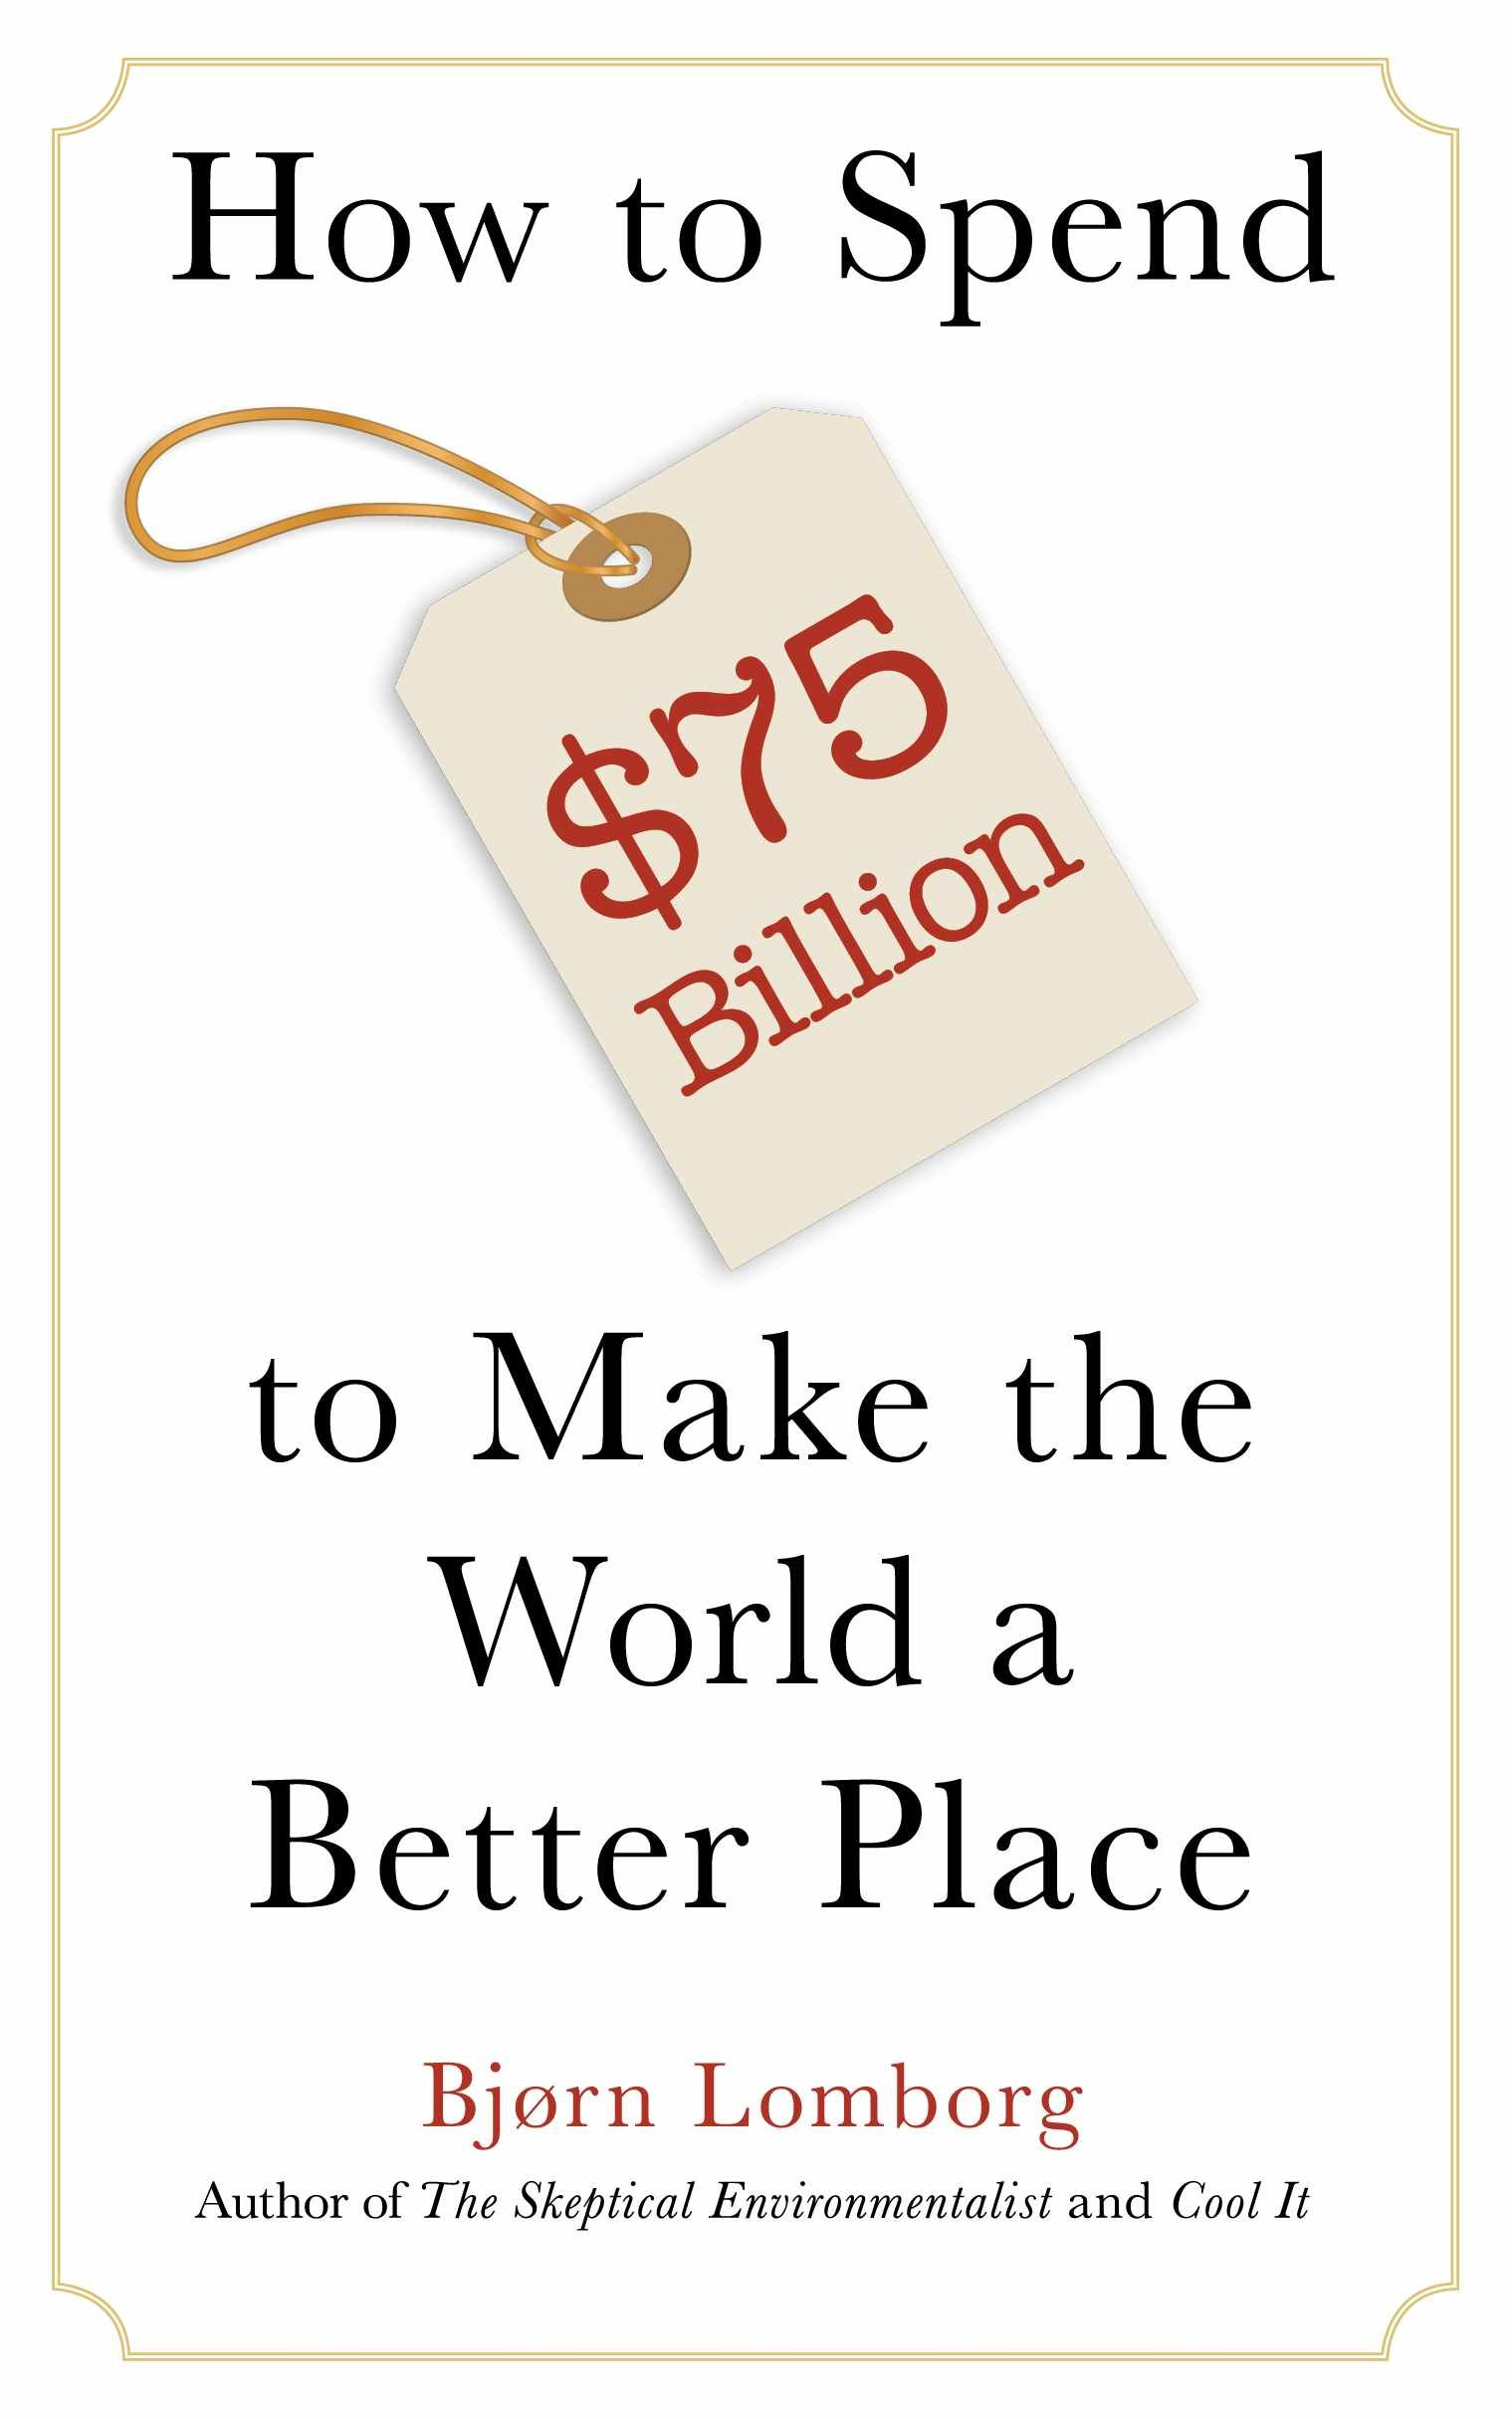 How to Spend $75 Billion to Make the World a Better Place